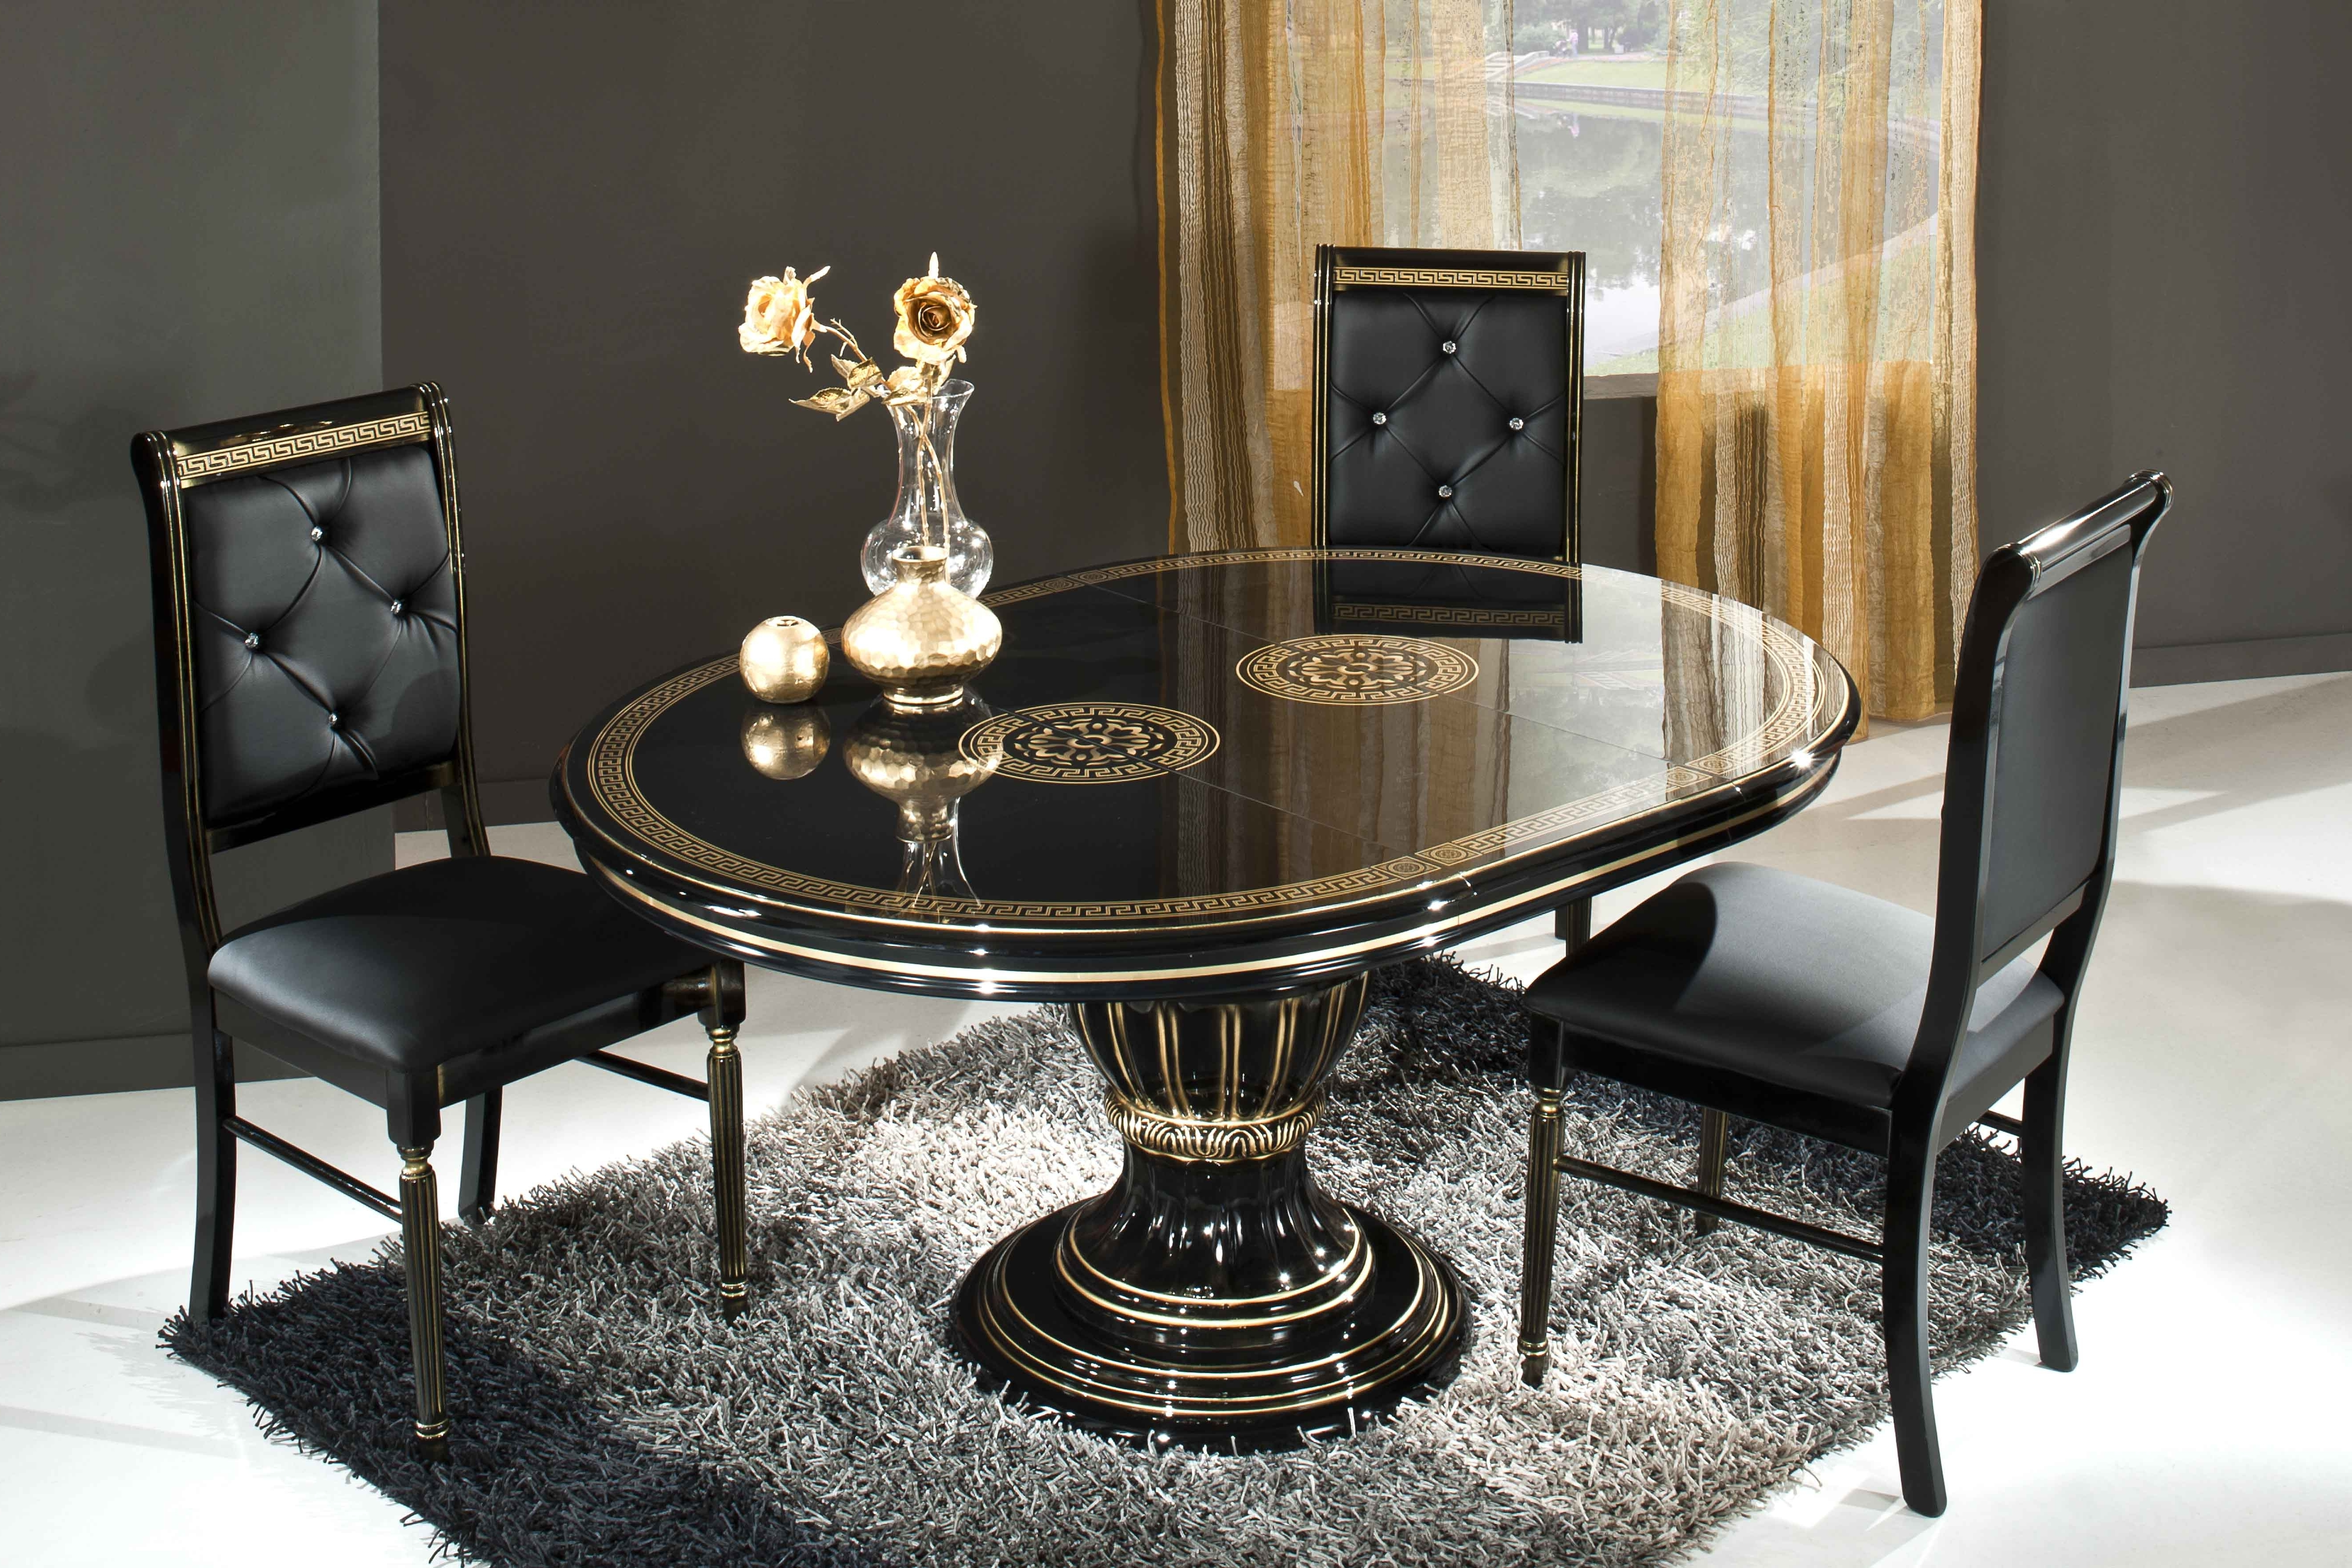 Black Extendable Dining Tables And Chairs Inside Most Recently Released Rosella Black Extending Dining Table With Chairs – Modish Furnishing (View 2 of 25)